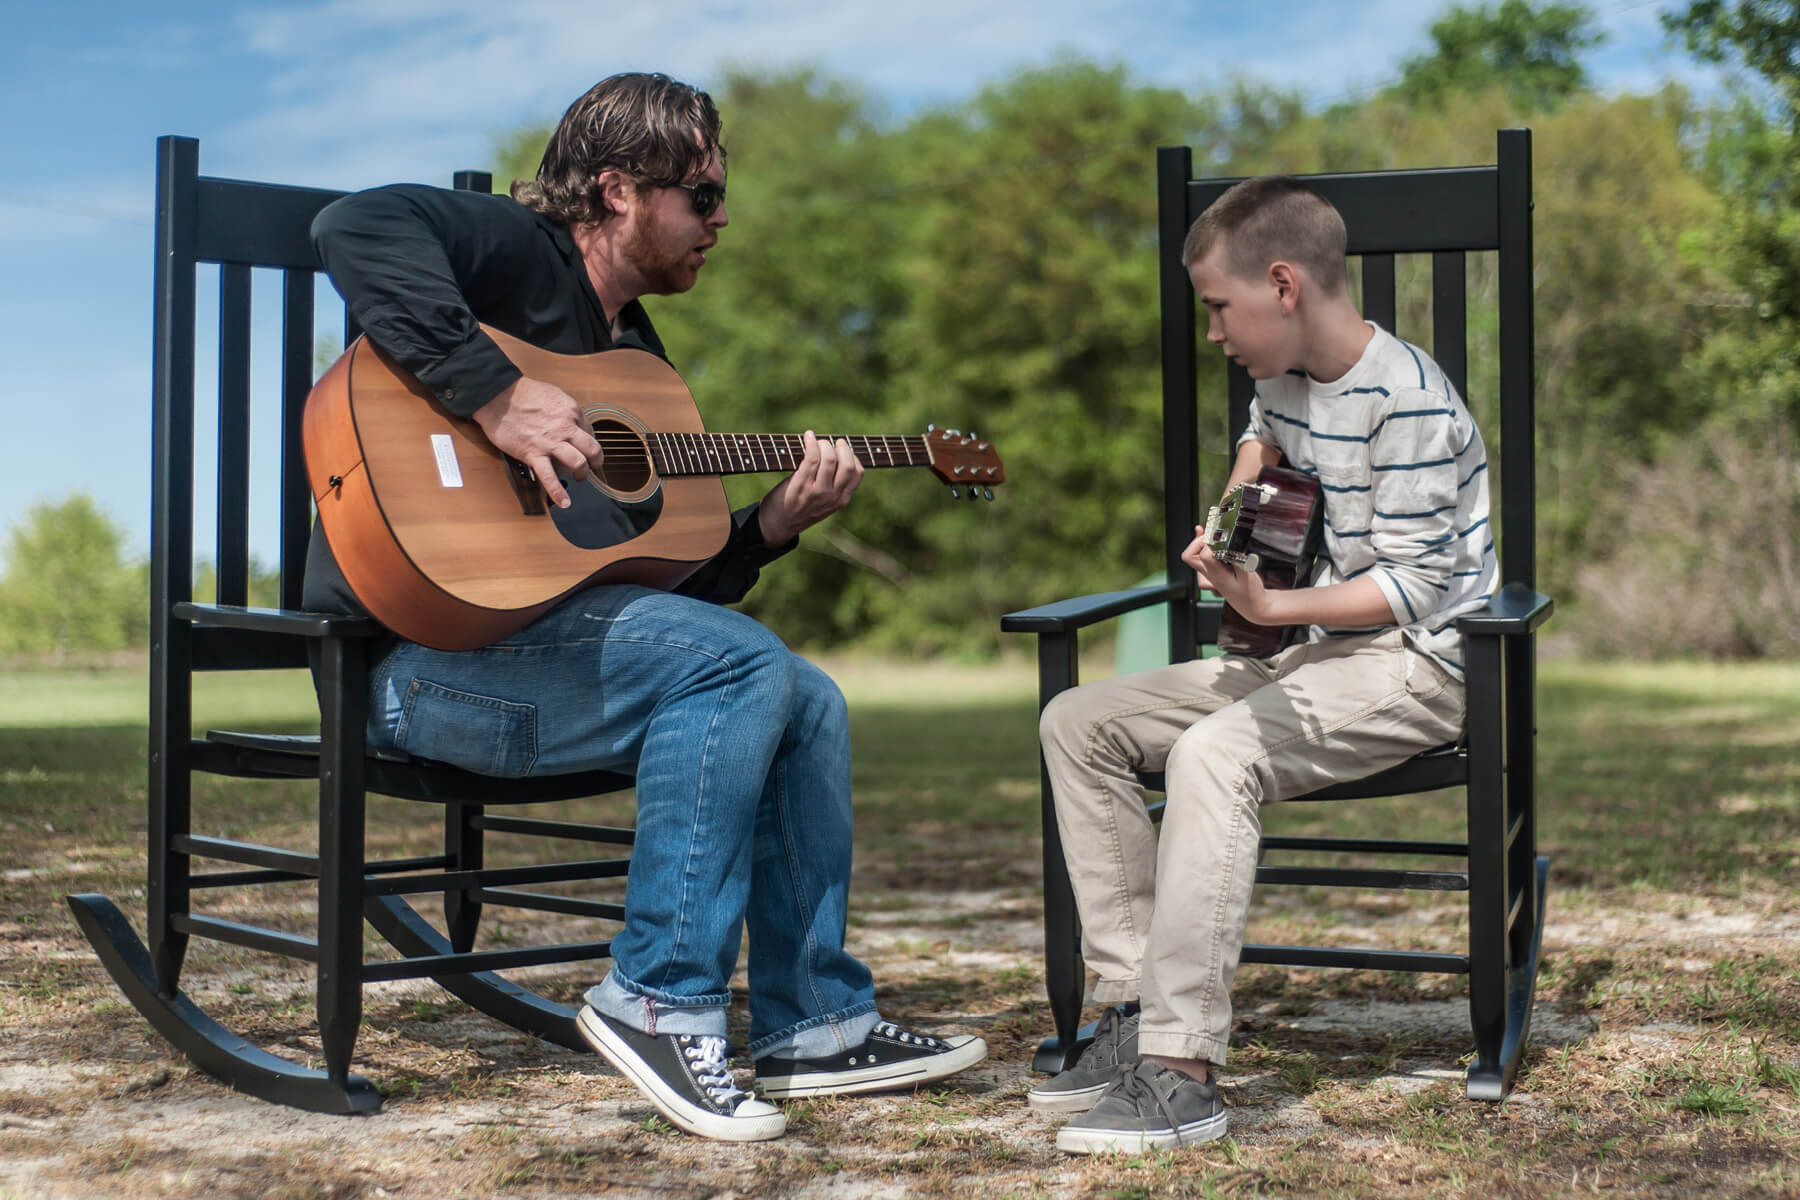 Student and instructor having a guitar lesson outdoors.